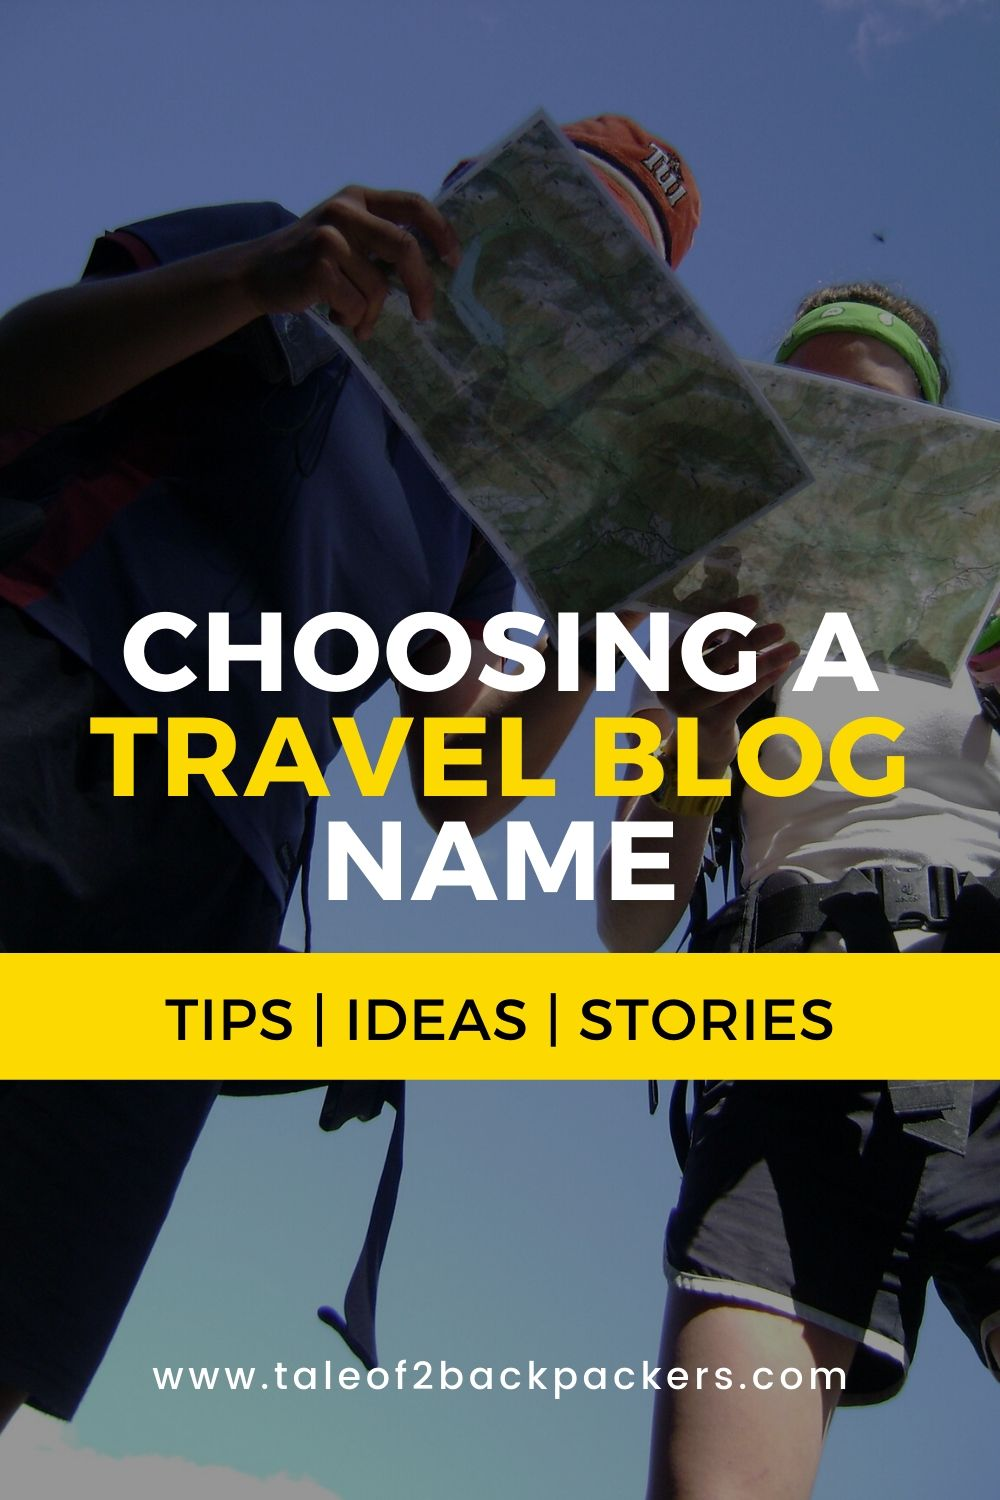 Hiw to choose teh perfect travel blog names - ideas, tips and stories